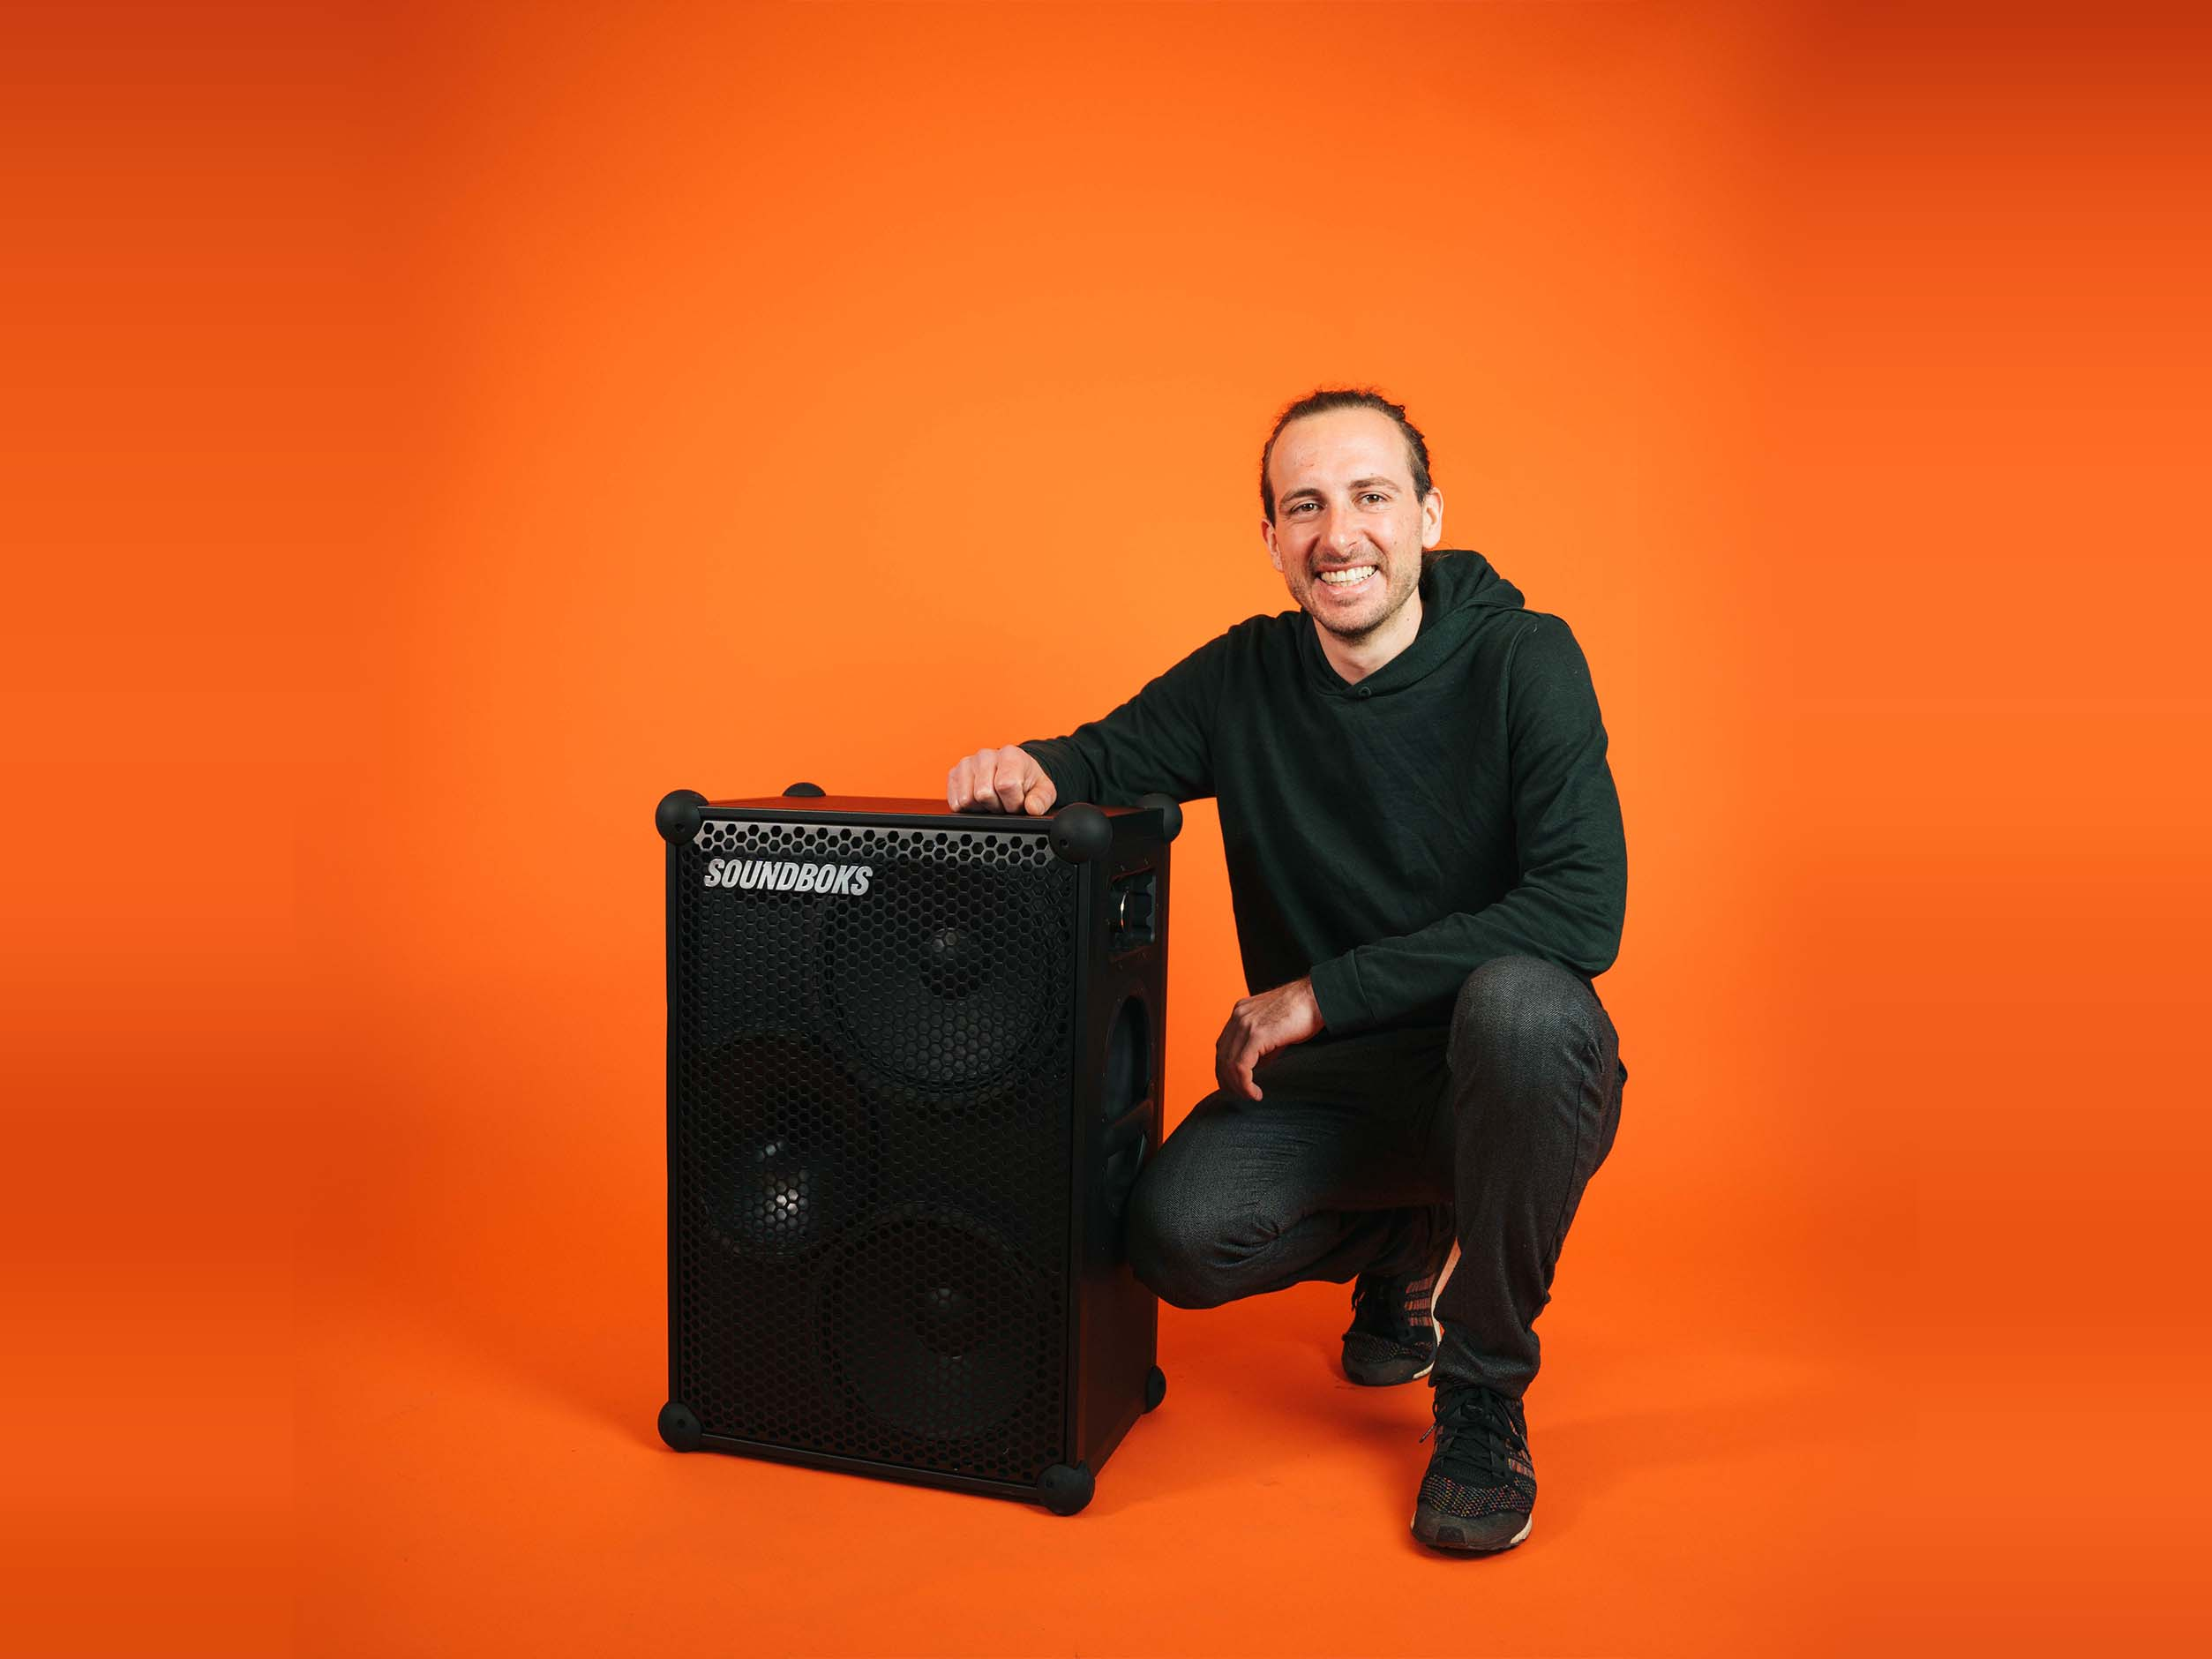 Stephan soundboks employee, sitting with a SOUNDBOKS in front of an orange background